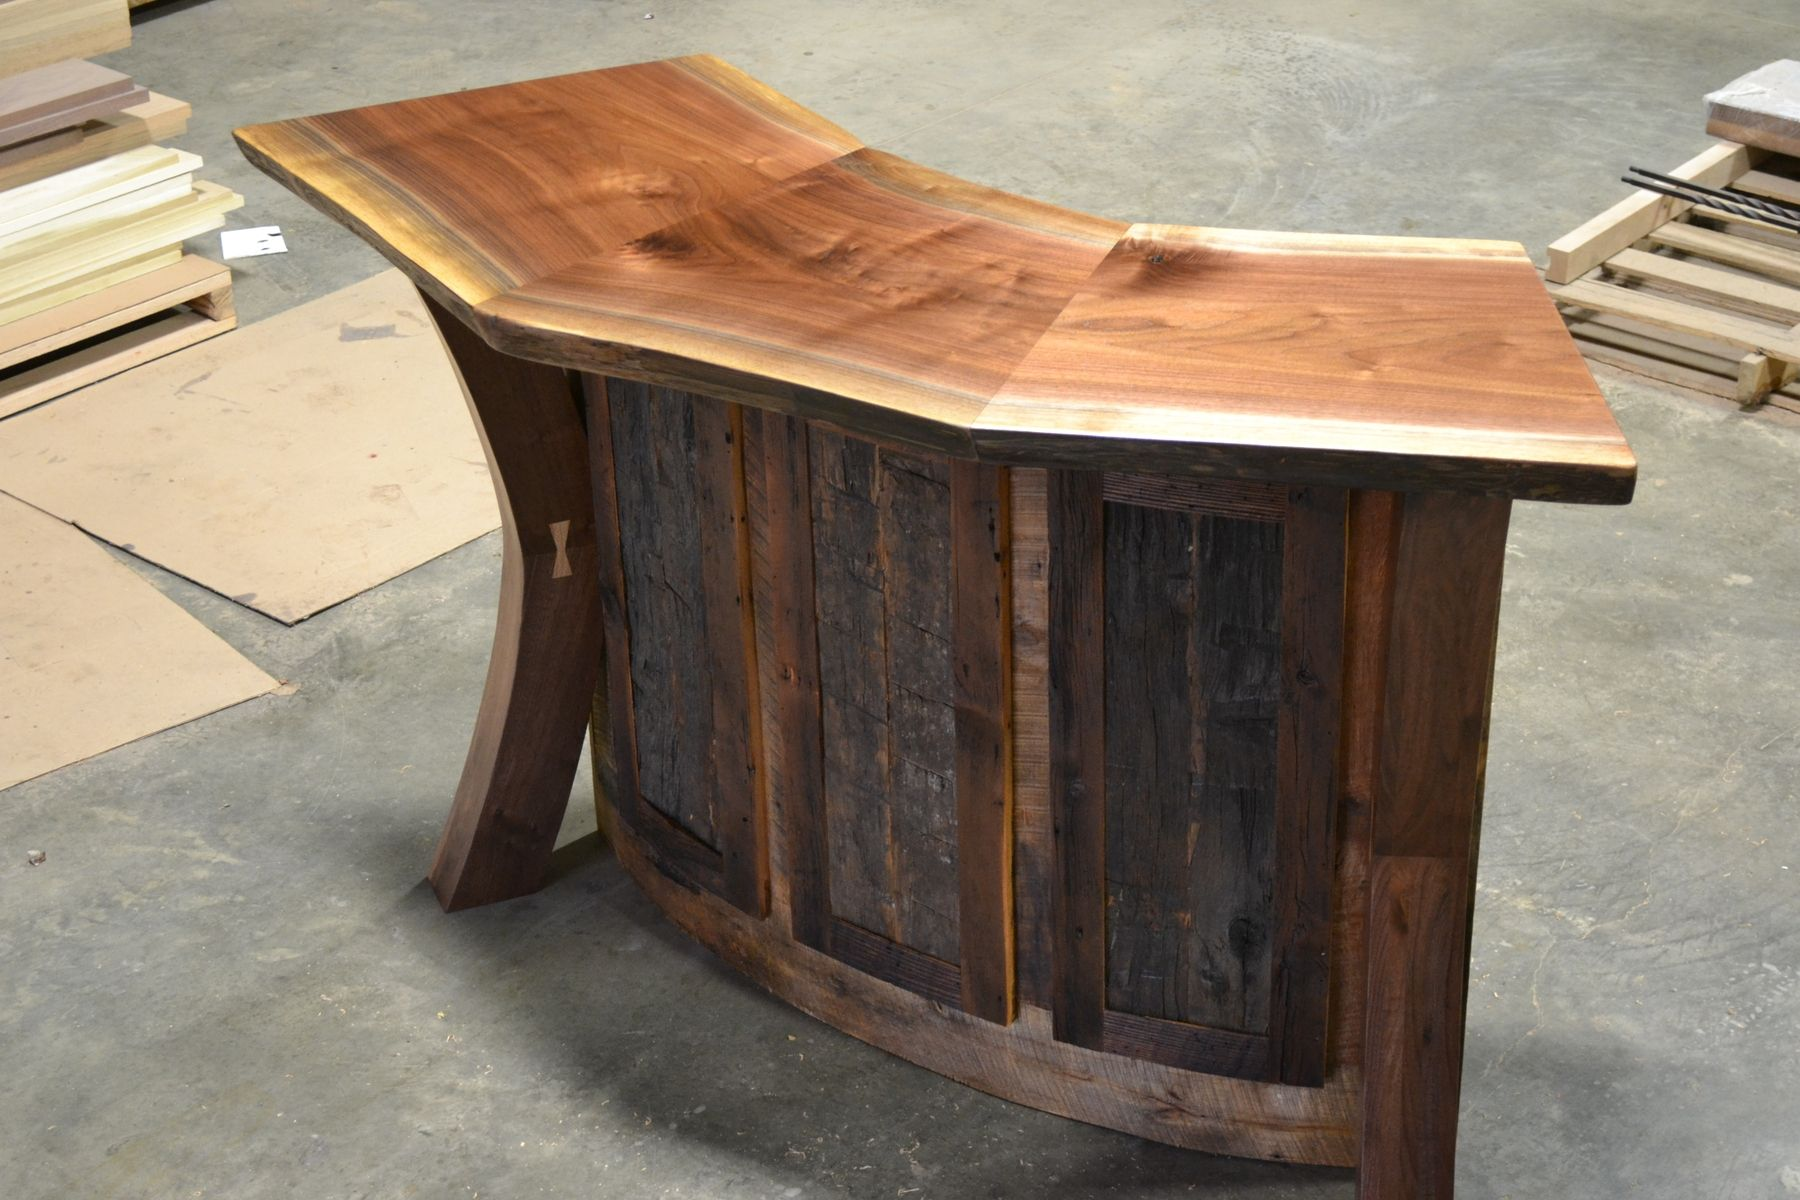 Hand Crafted Live Edge Walnut And Reclaimed Curved Bar  : 65853871677 from www.custommade.com size 1800 x 1200 jpeg 252kB